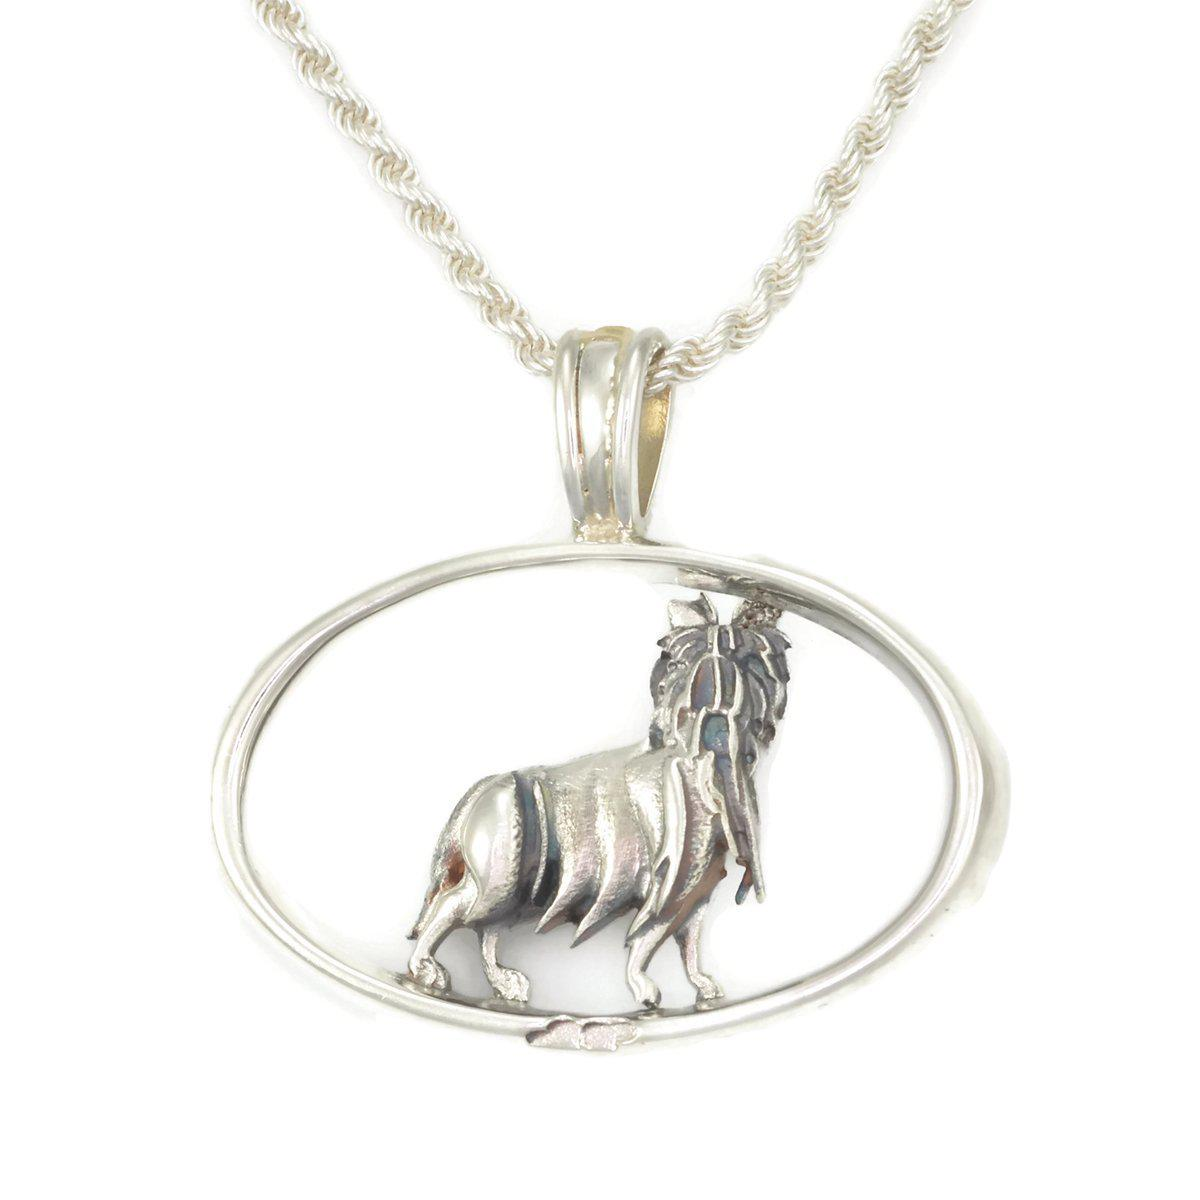 Donna Pizarro Designs Sterling Silver Sheltie Necklace With 14kt Accent EmJCRxB0D3